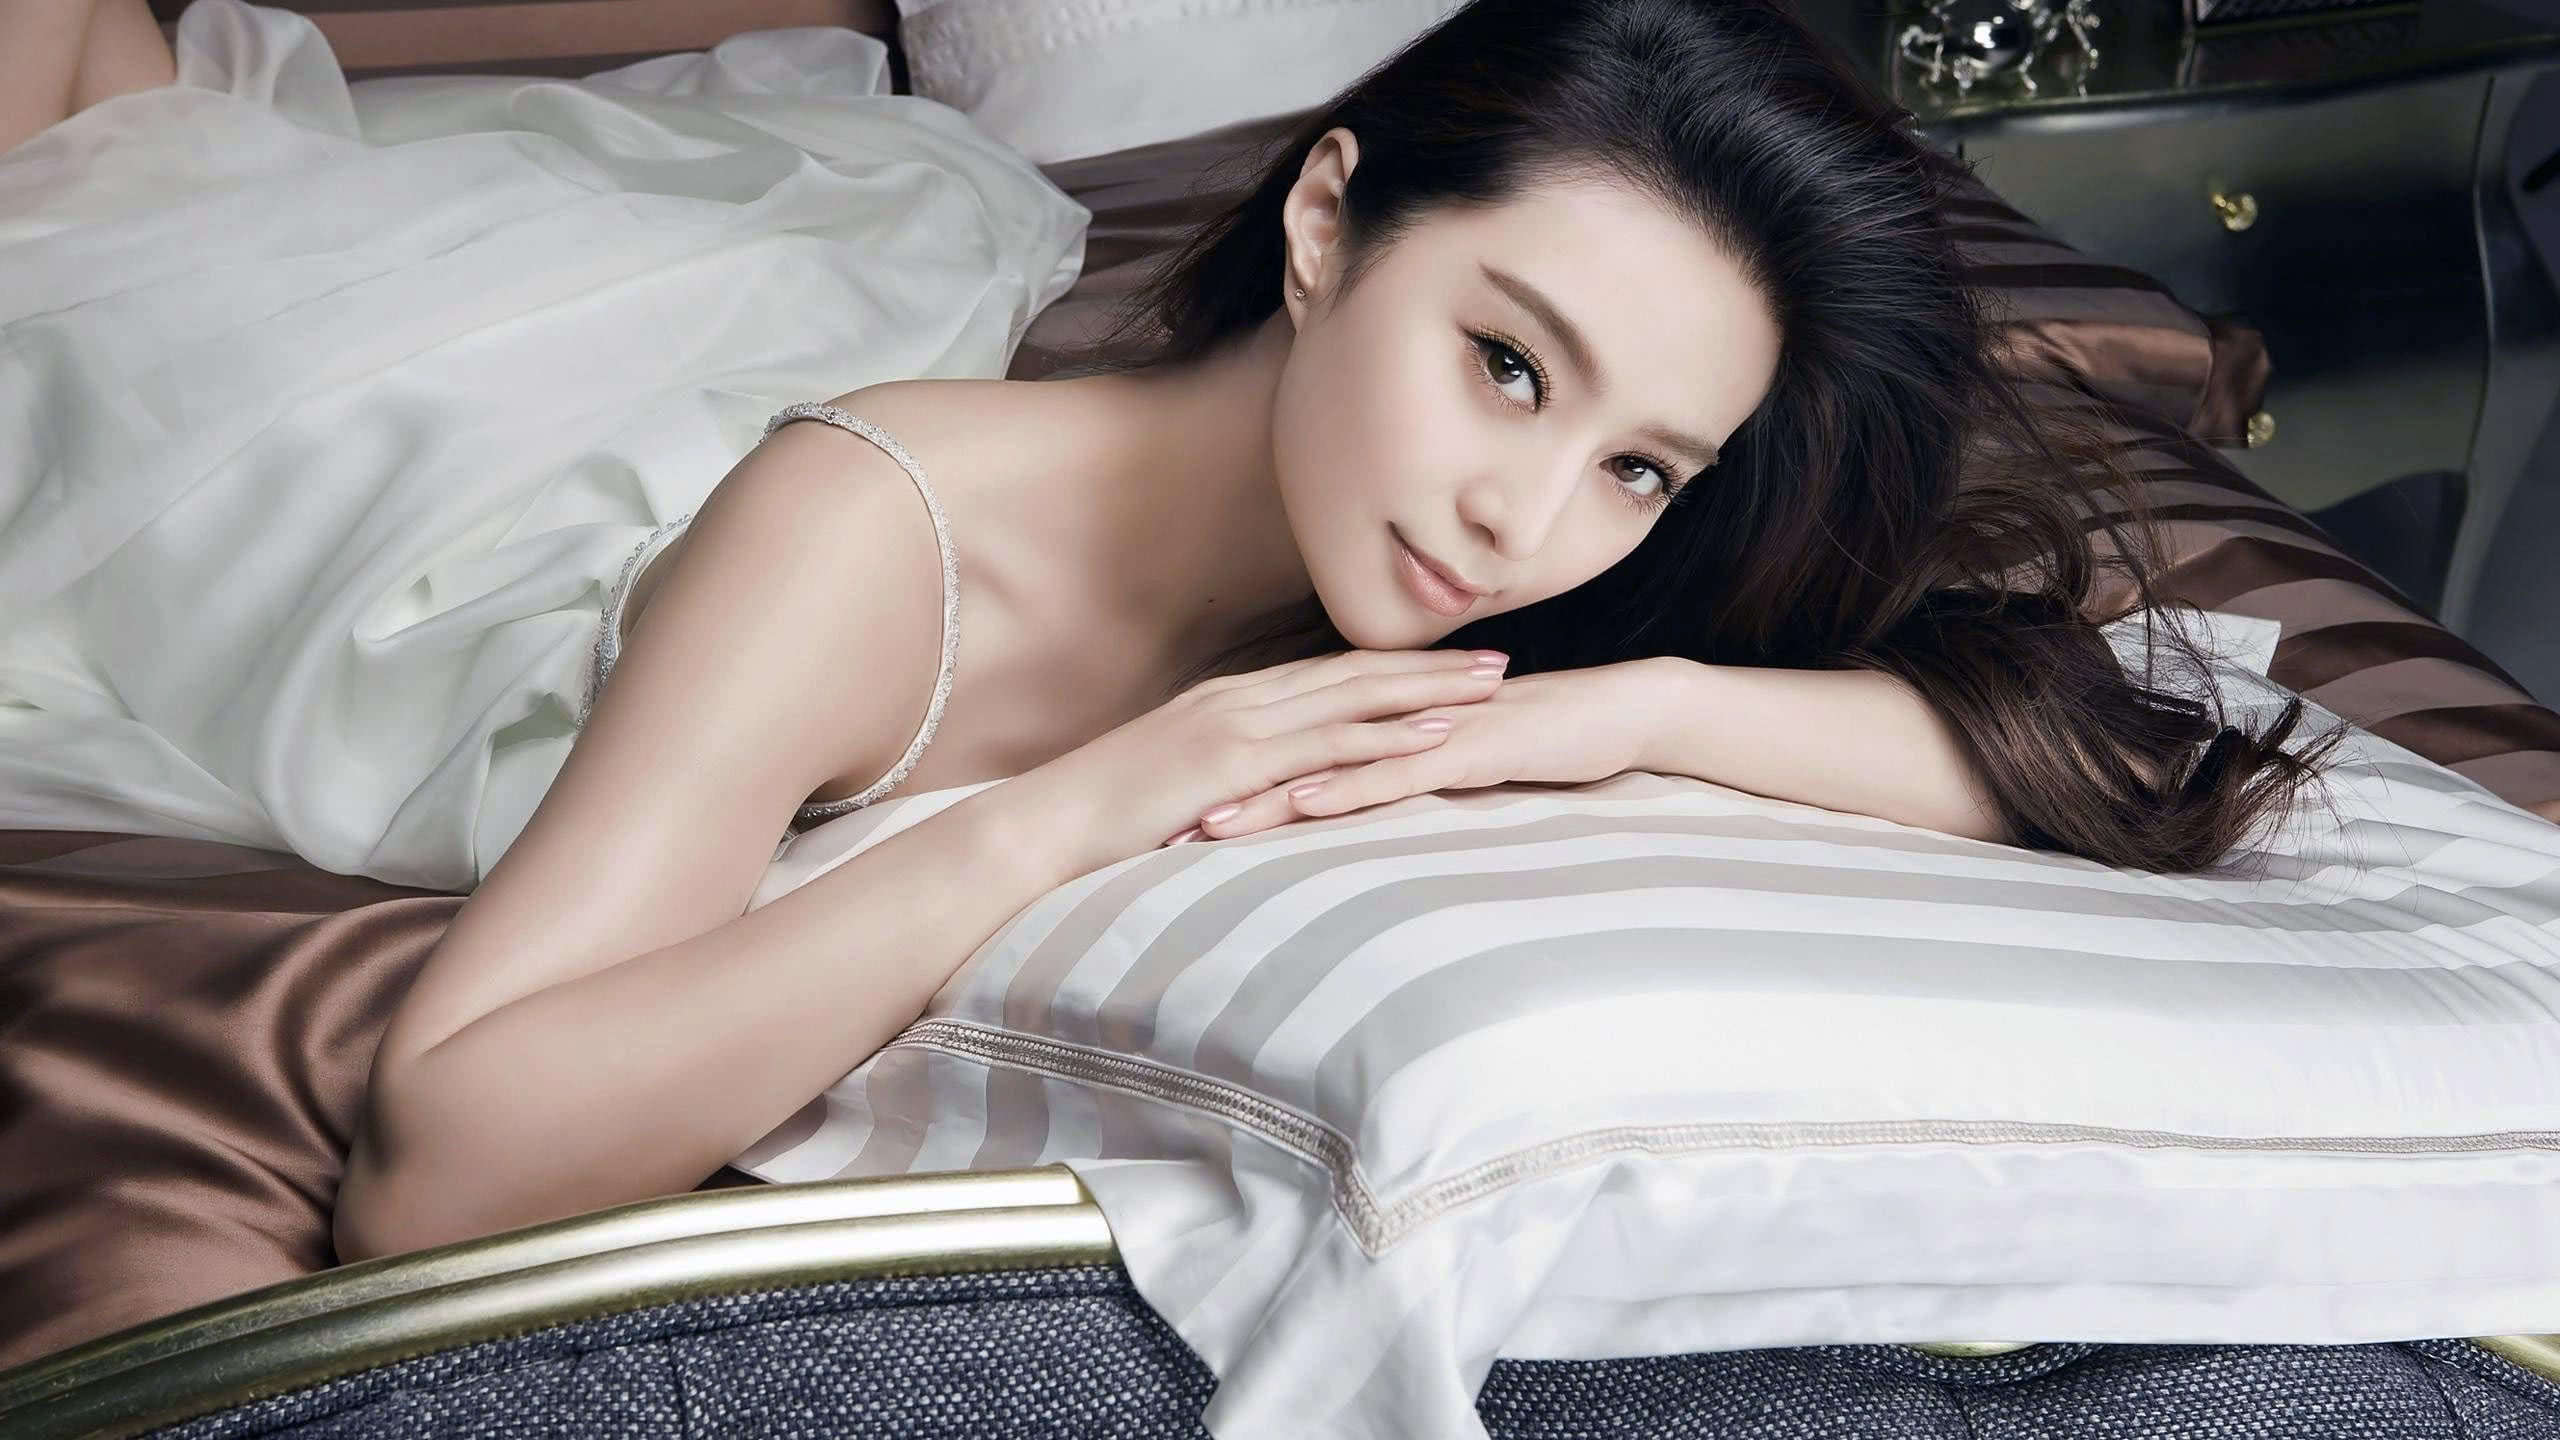 fan bing bing photoshoot wqhd 1440p wallpaper